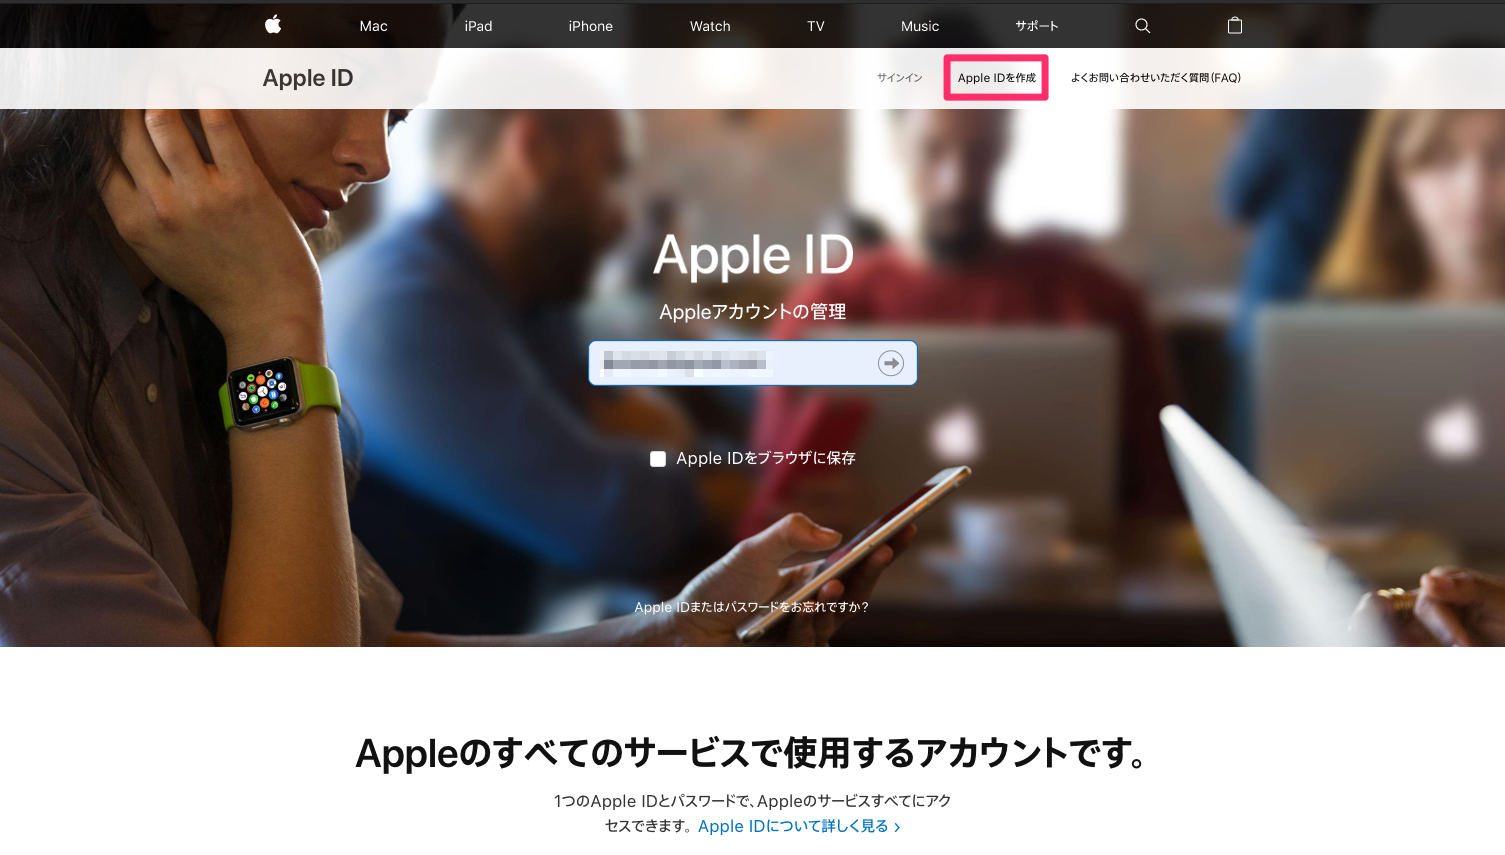 AppleID 作成